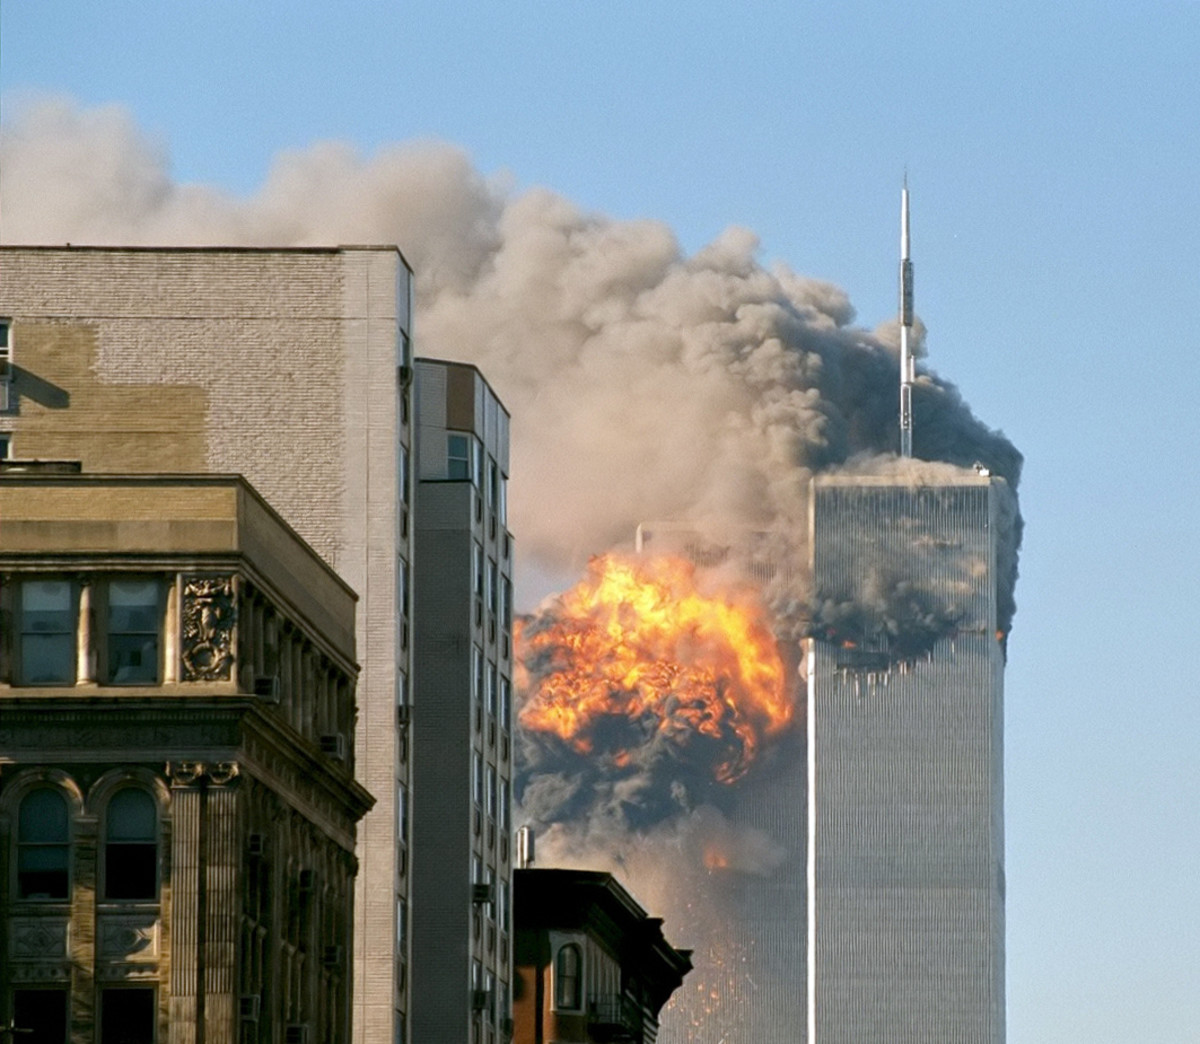 The twin towers were taken down by terrorists on September 11th, 2001. This event is the what initiated the war on terrorism, and symbolizes the struggle of western powers against terrorism.